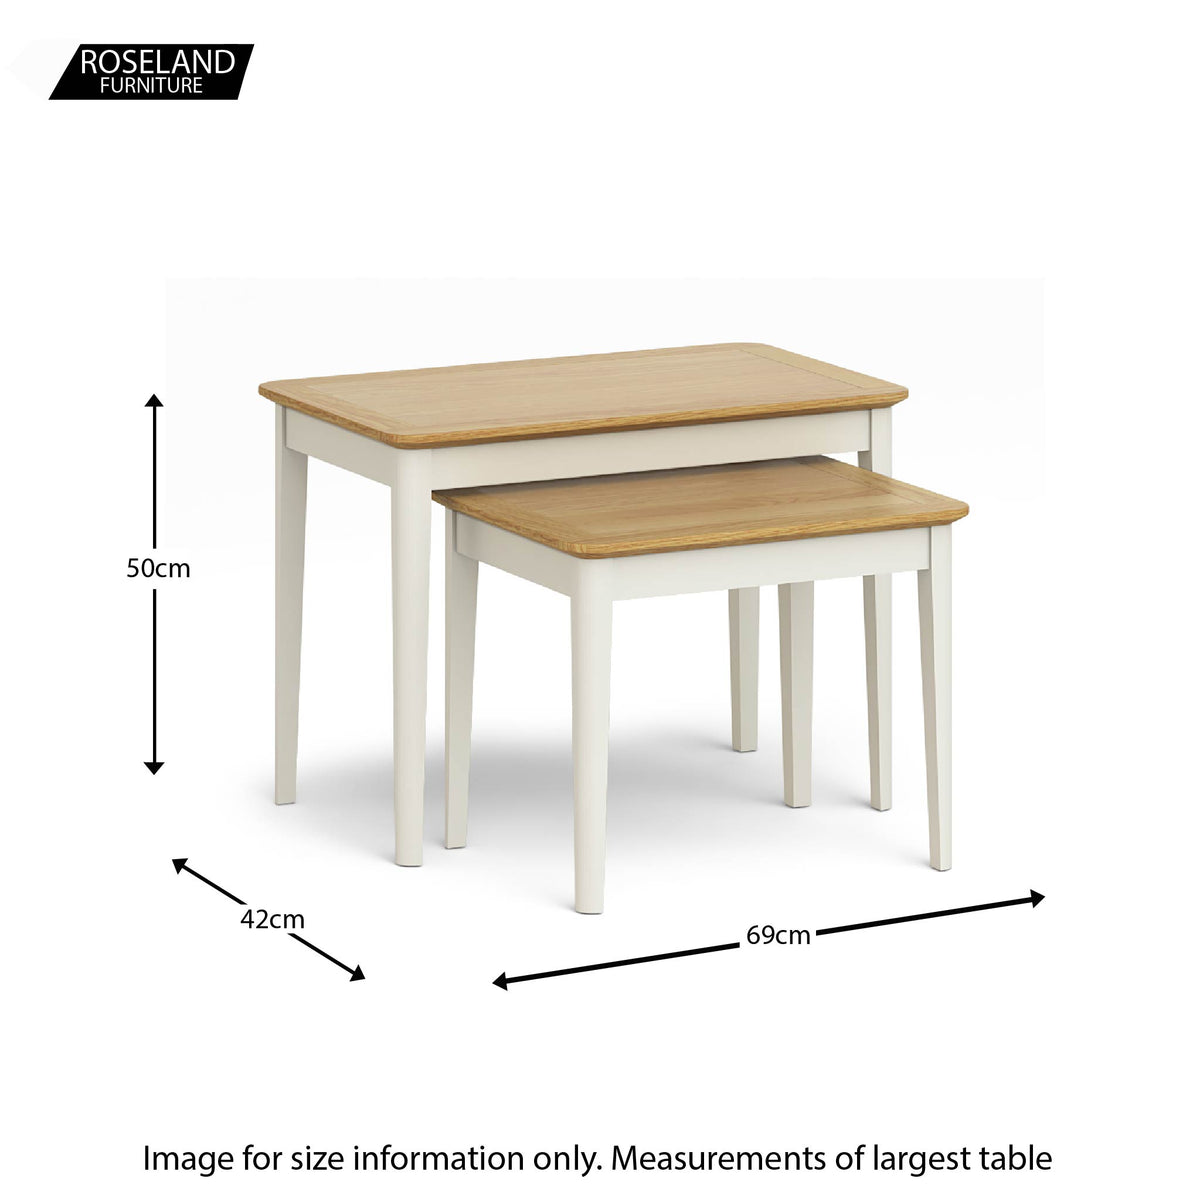 Windsor Cream Nest of Tables size guide